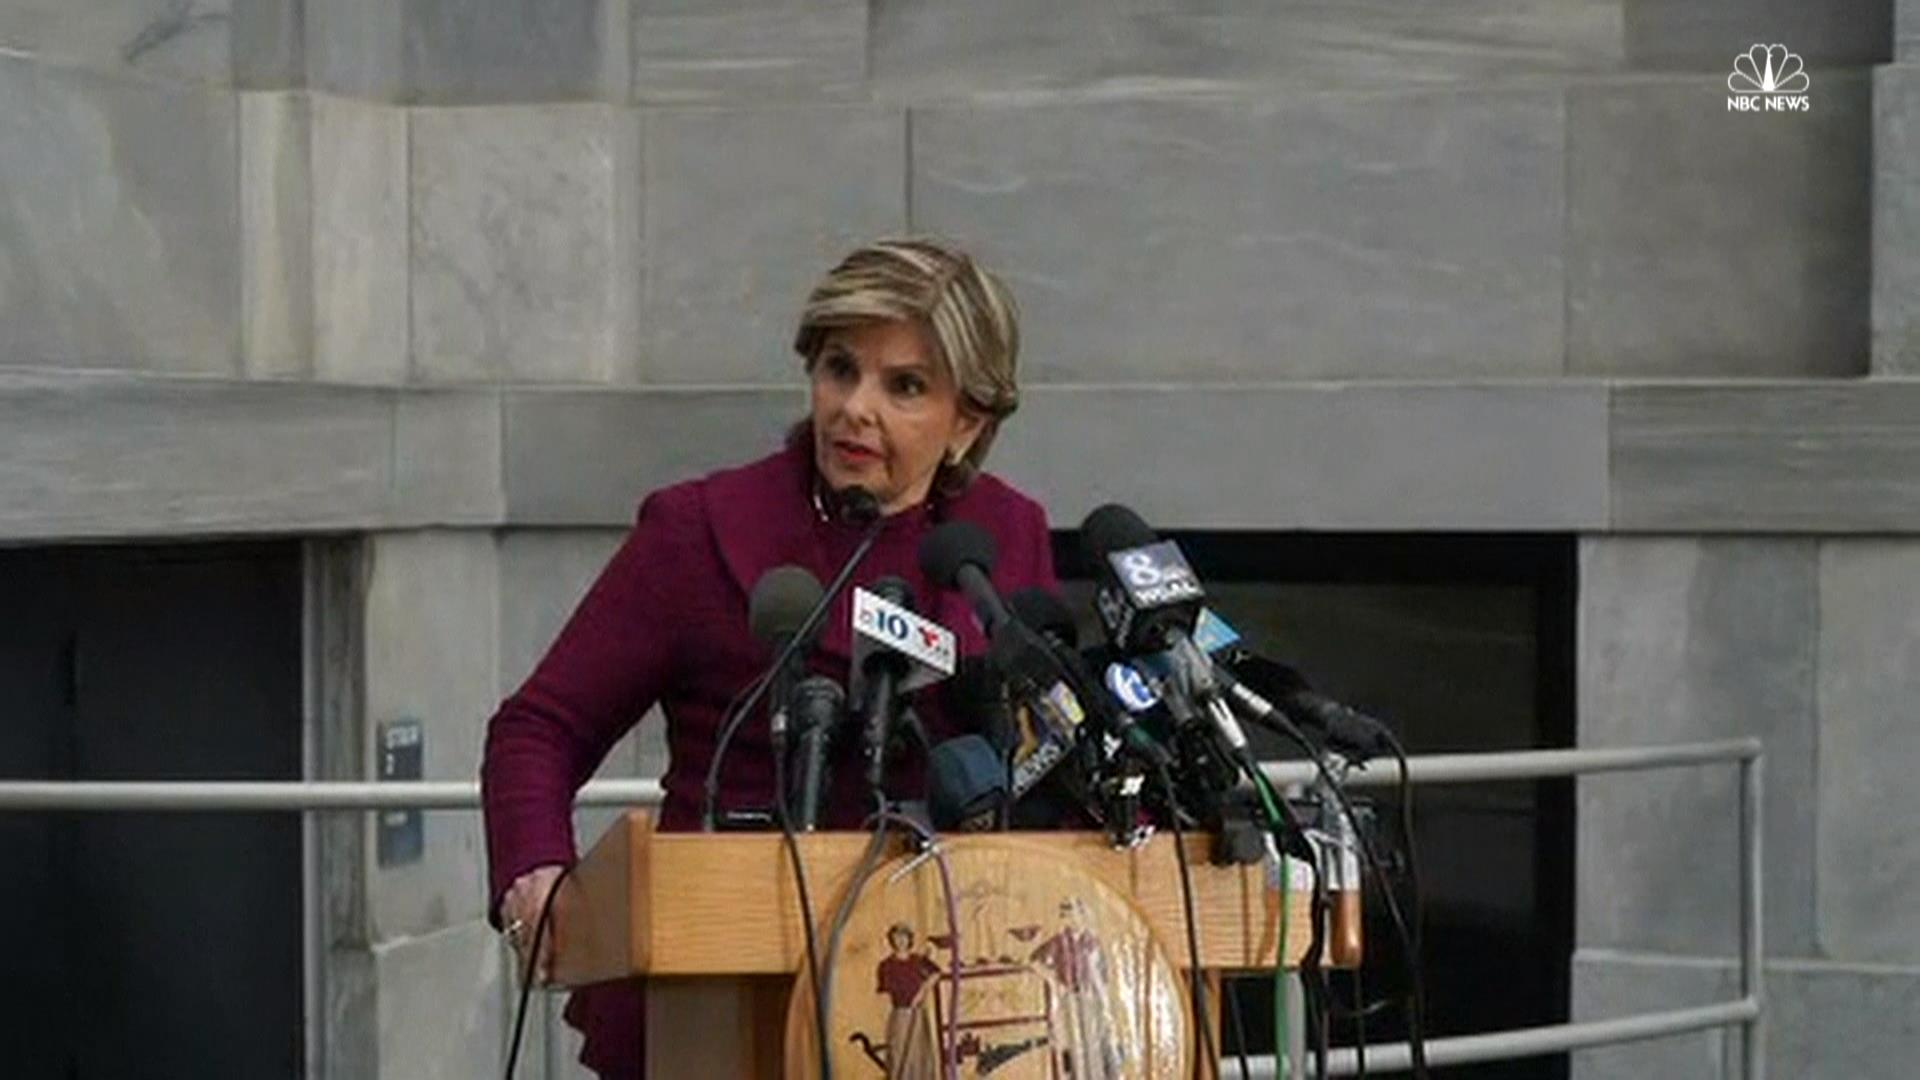 single women in cosby Legal experts have said that the account of a second woman describing what she said was an act of sexual assault could strengthen the case against mr cosby, 79, who has denied any misconduct but the judge's decision was far from a full victory for prosecutors in montgomery county, pa, who had sought to introduce testimony.